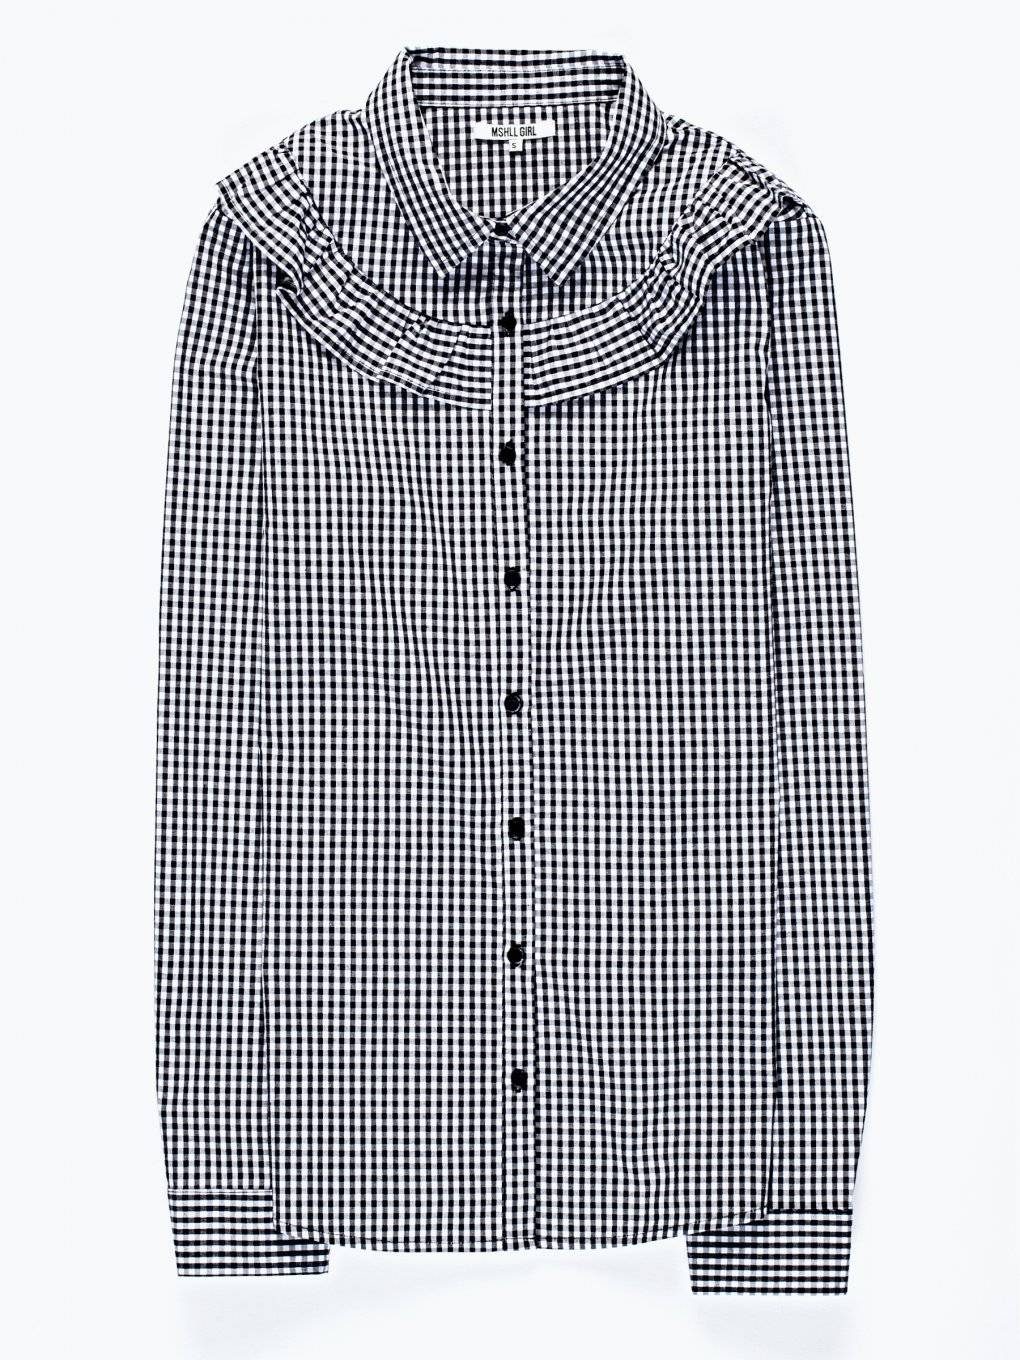 Gingham pattern shirt with ruffle detail